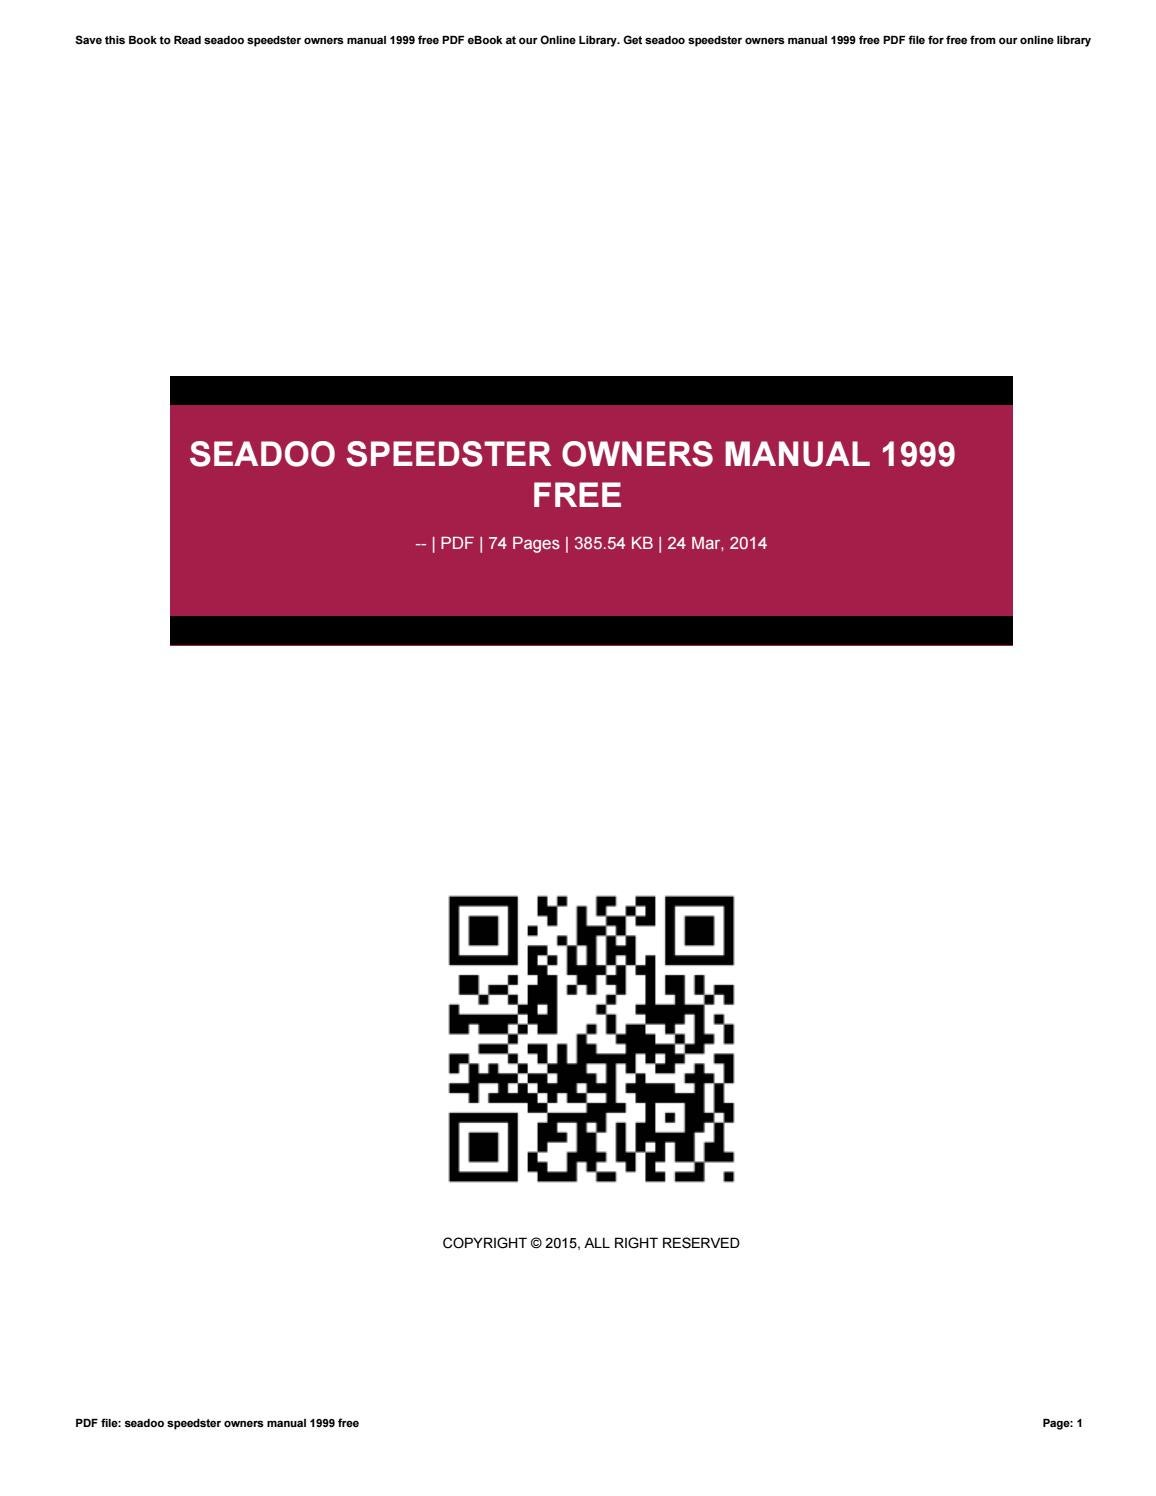 seadoo speedster owners manual 1999 free by harvard ac uk42 issuu rh issuu com 1996 seadoo sportster owners manual seadoo sportster shop manual